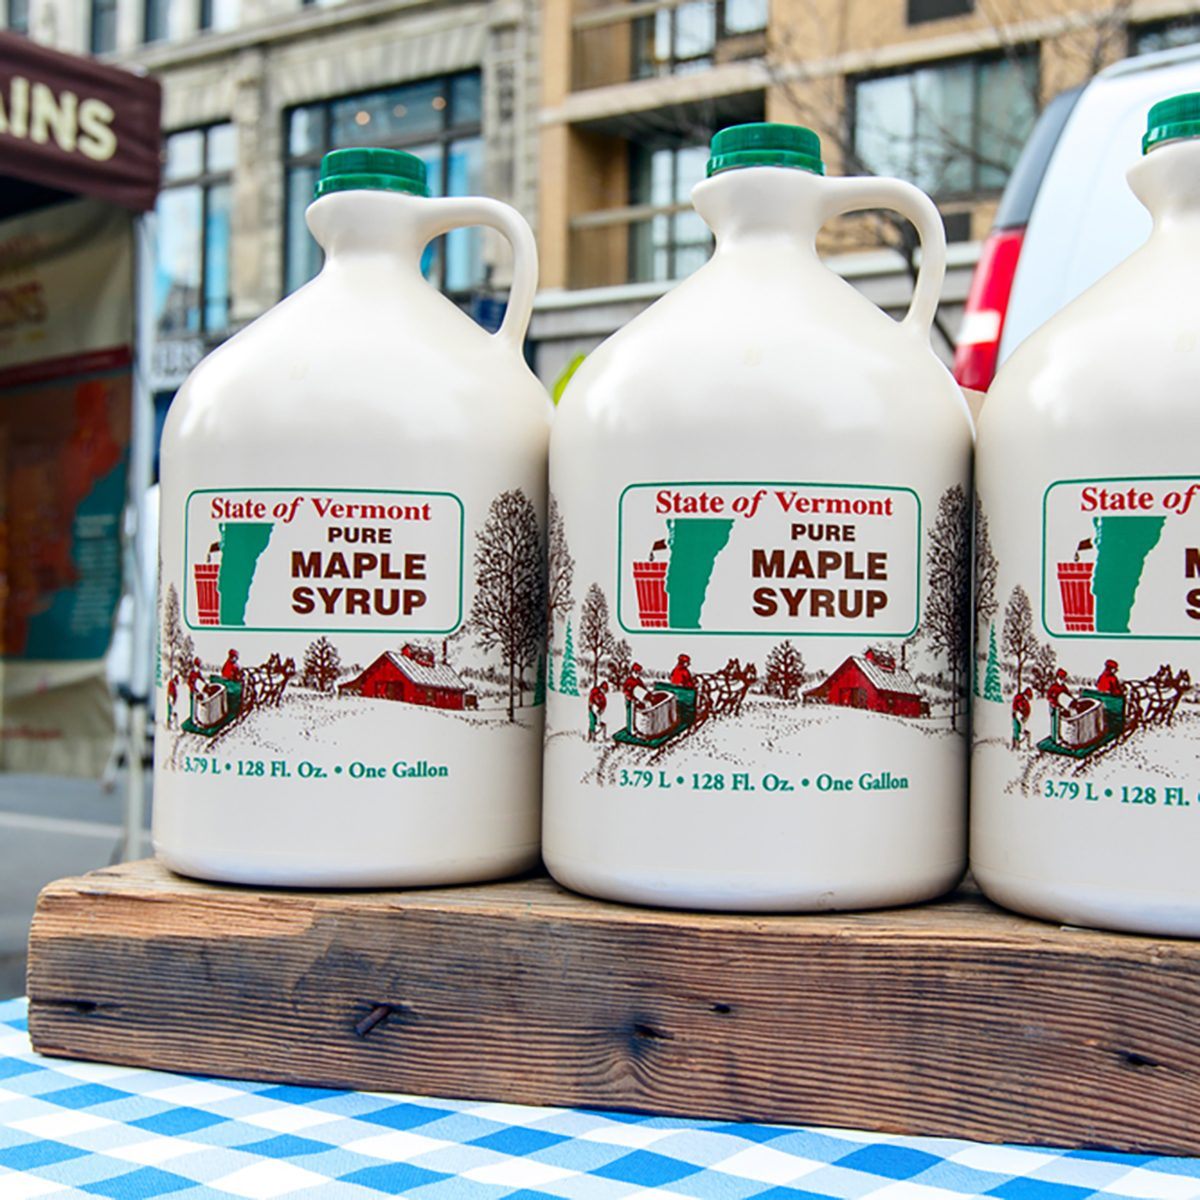 Jugs of Vermont maple syrup stand for sale at a farmer's market on Union Square